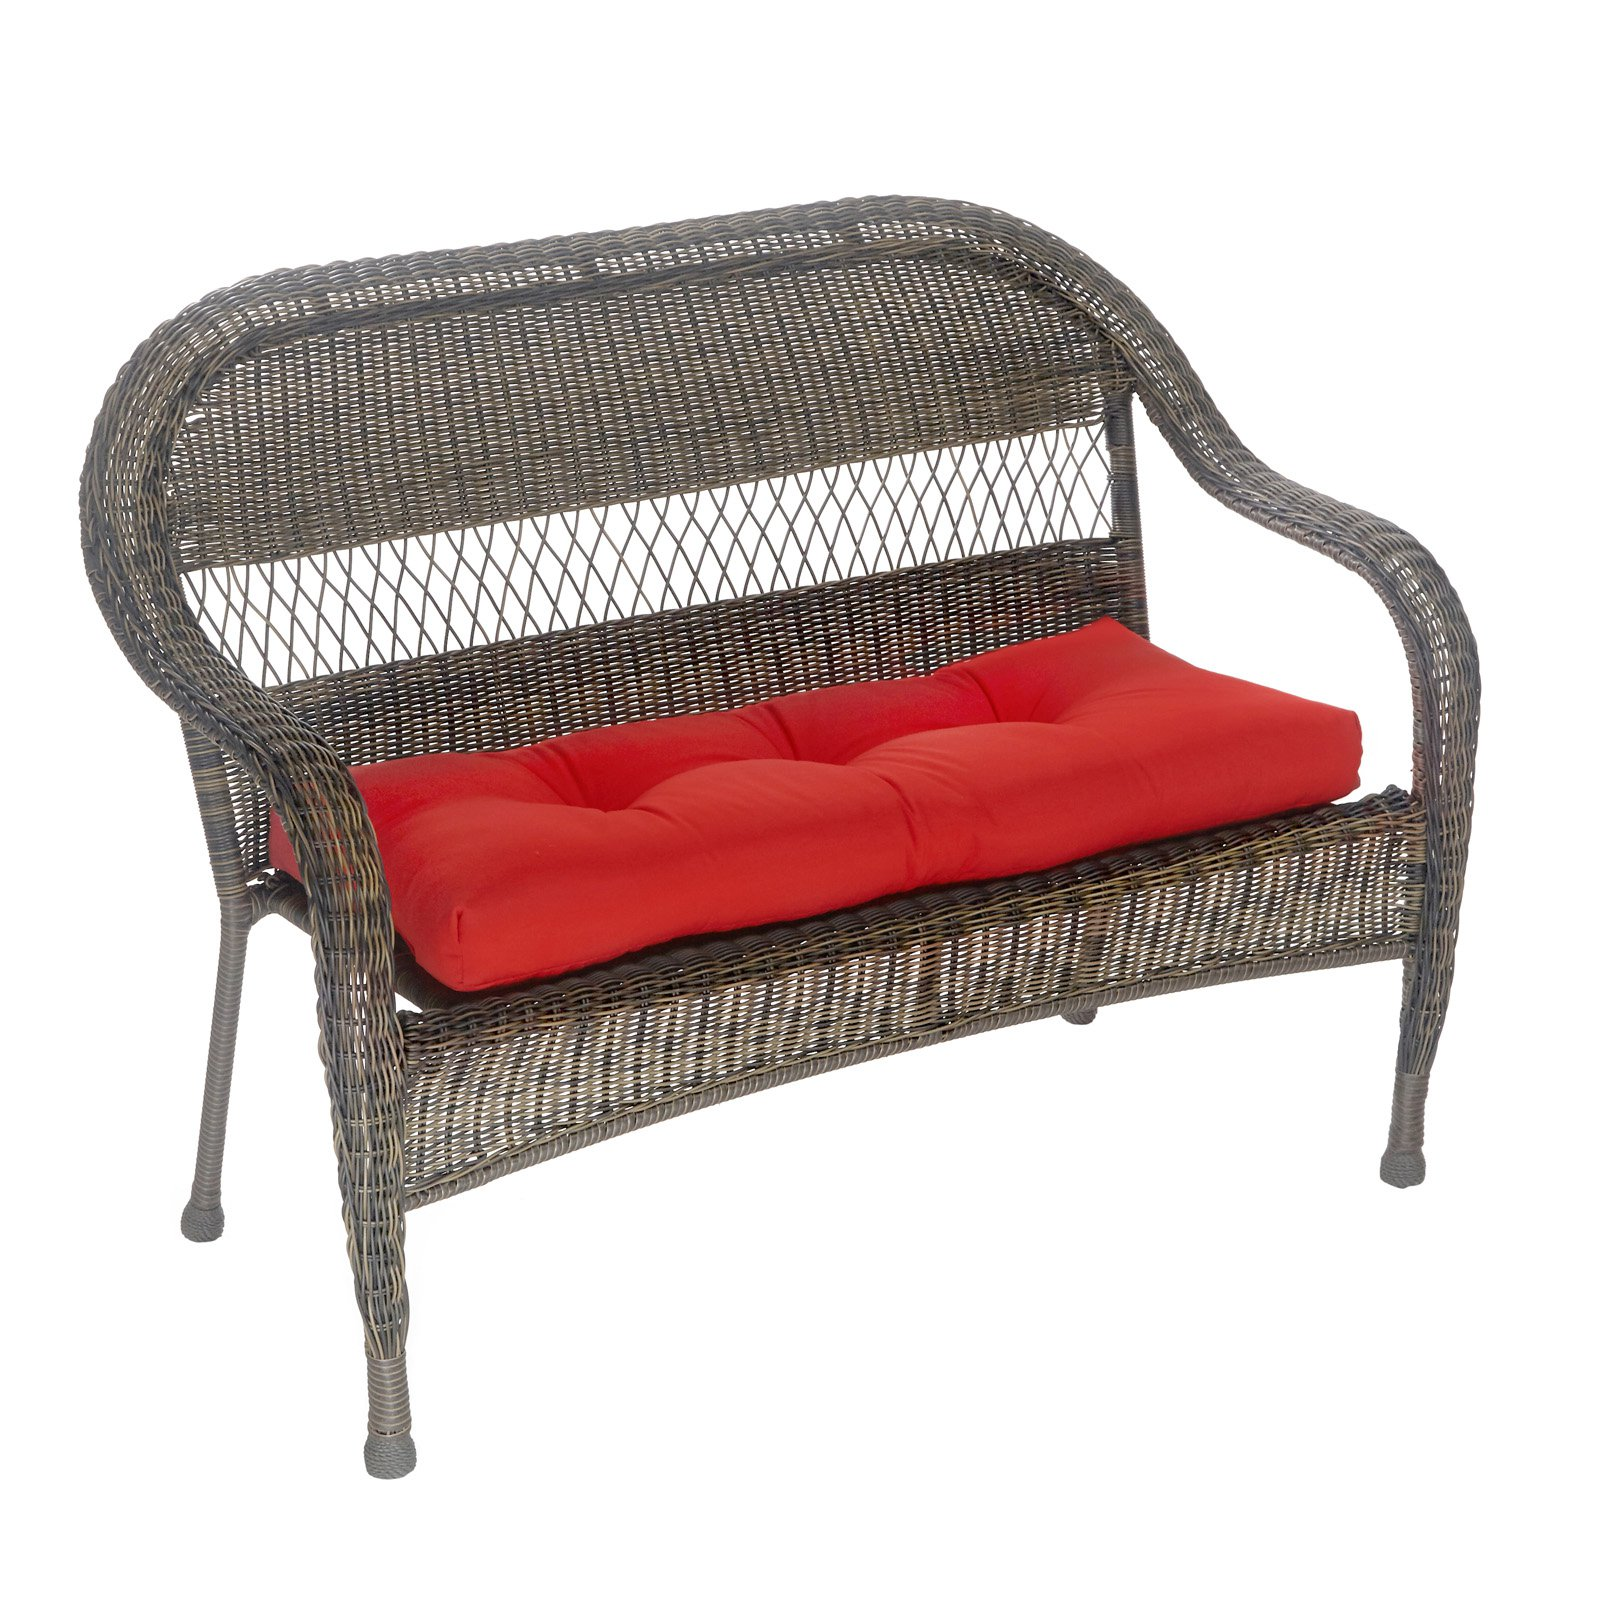 Klear Vu Easy Care 43 x 19 Outdoor Bench Cushion